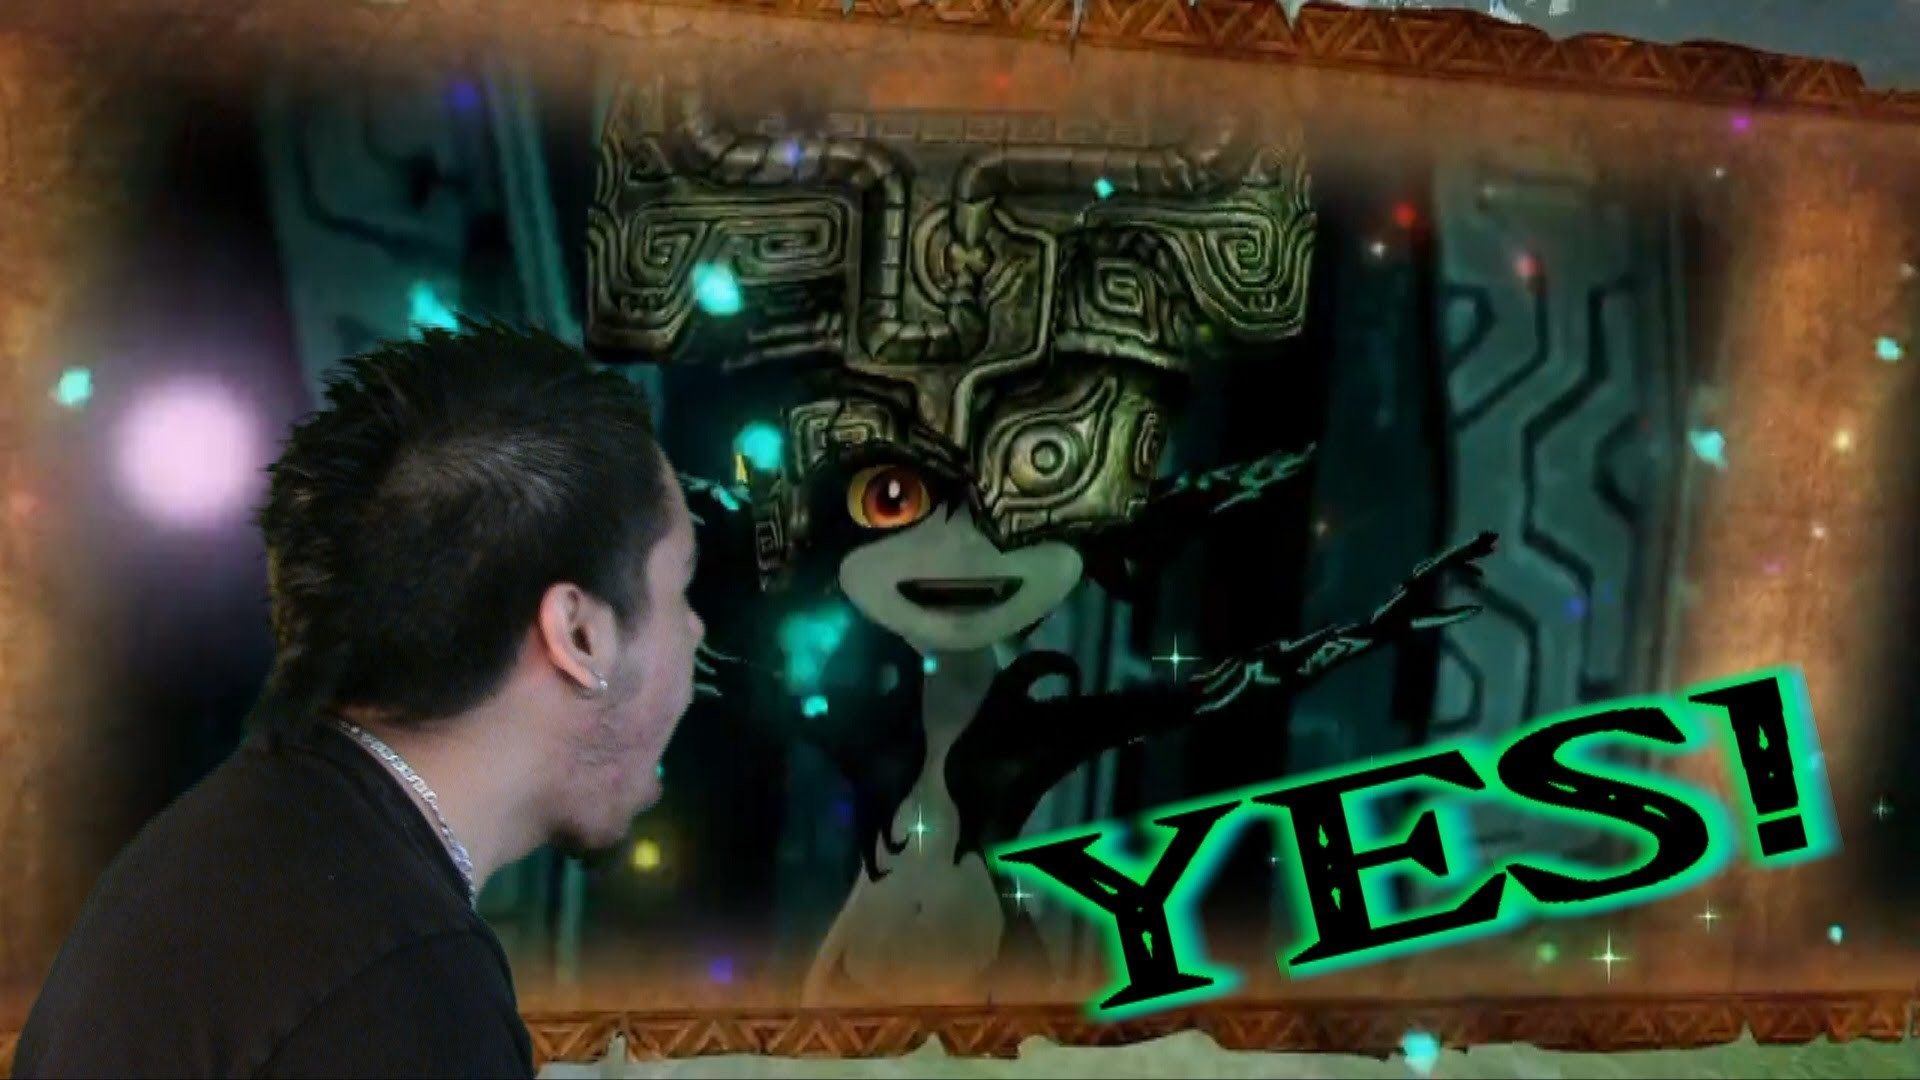 Hyrule Warriors E3 Trailer Discussion – MIDNA IS BACK!